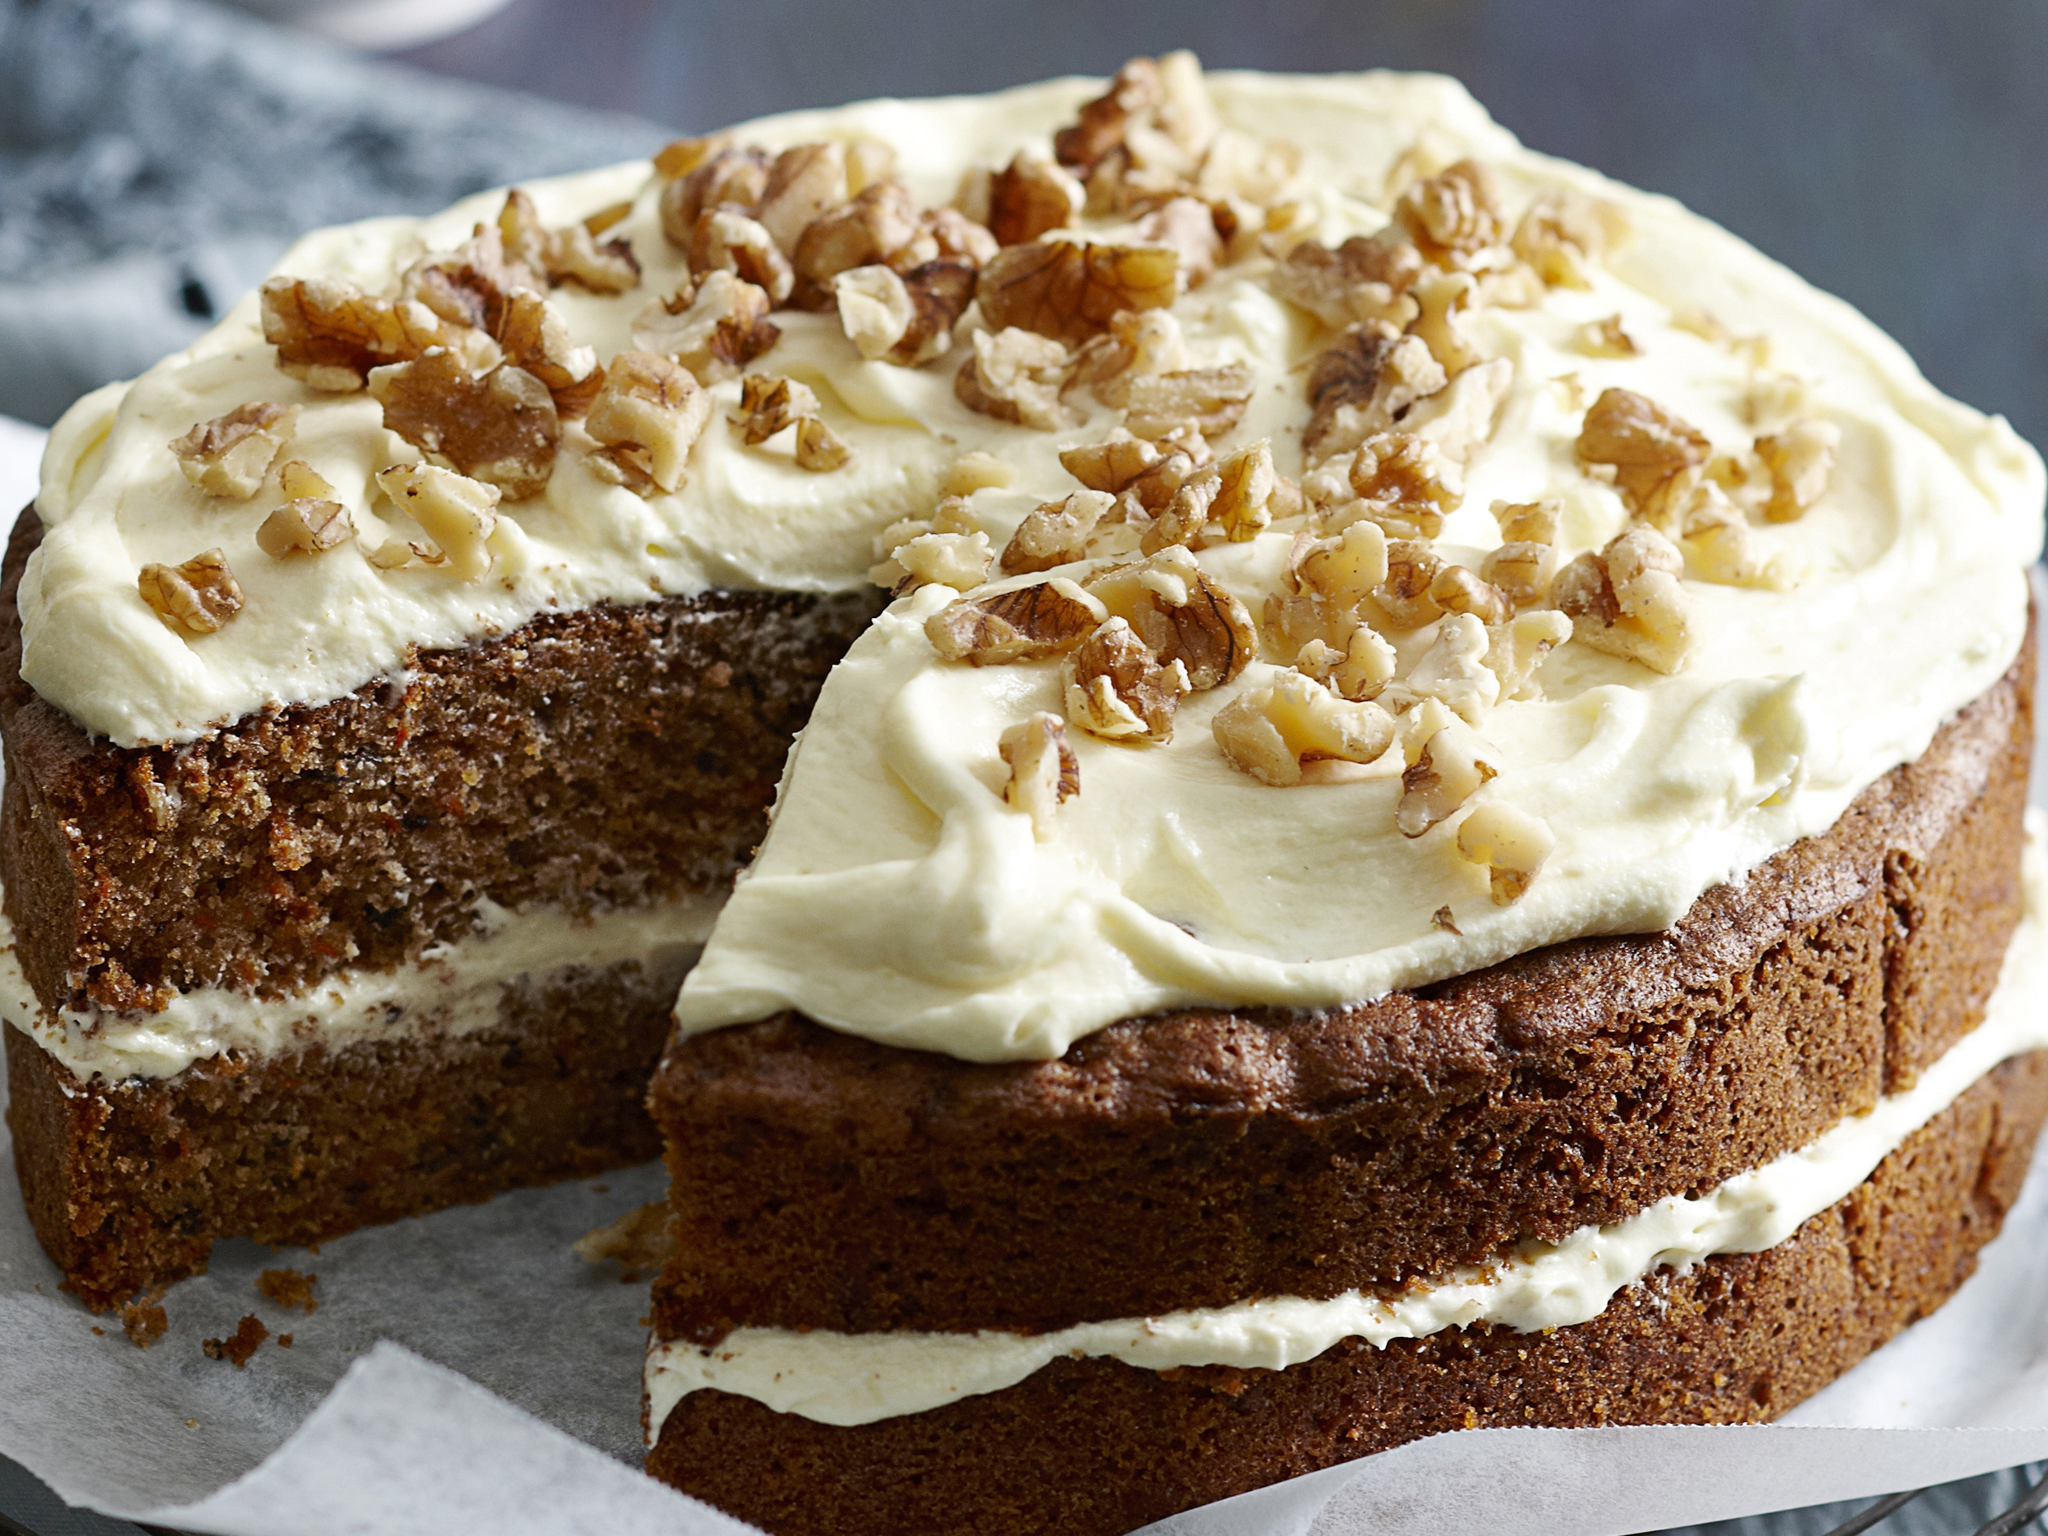 Our favourite family cakes - Carrot cake with cream cheese frosting